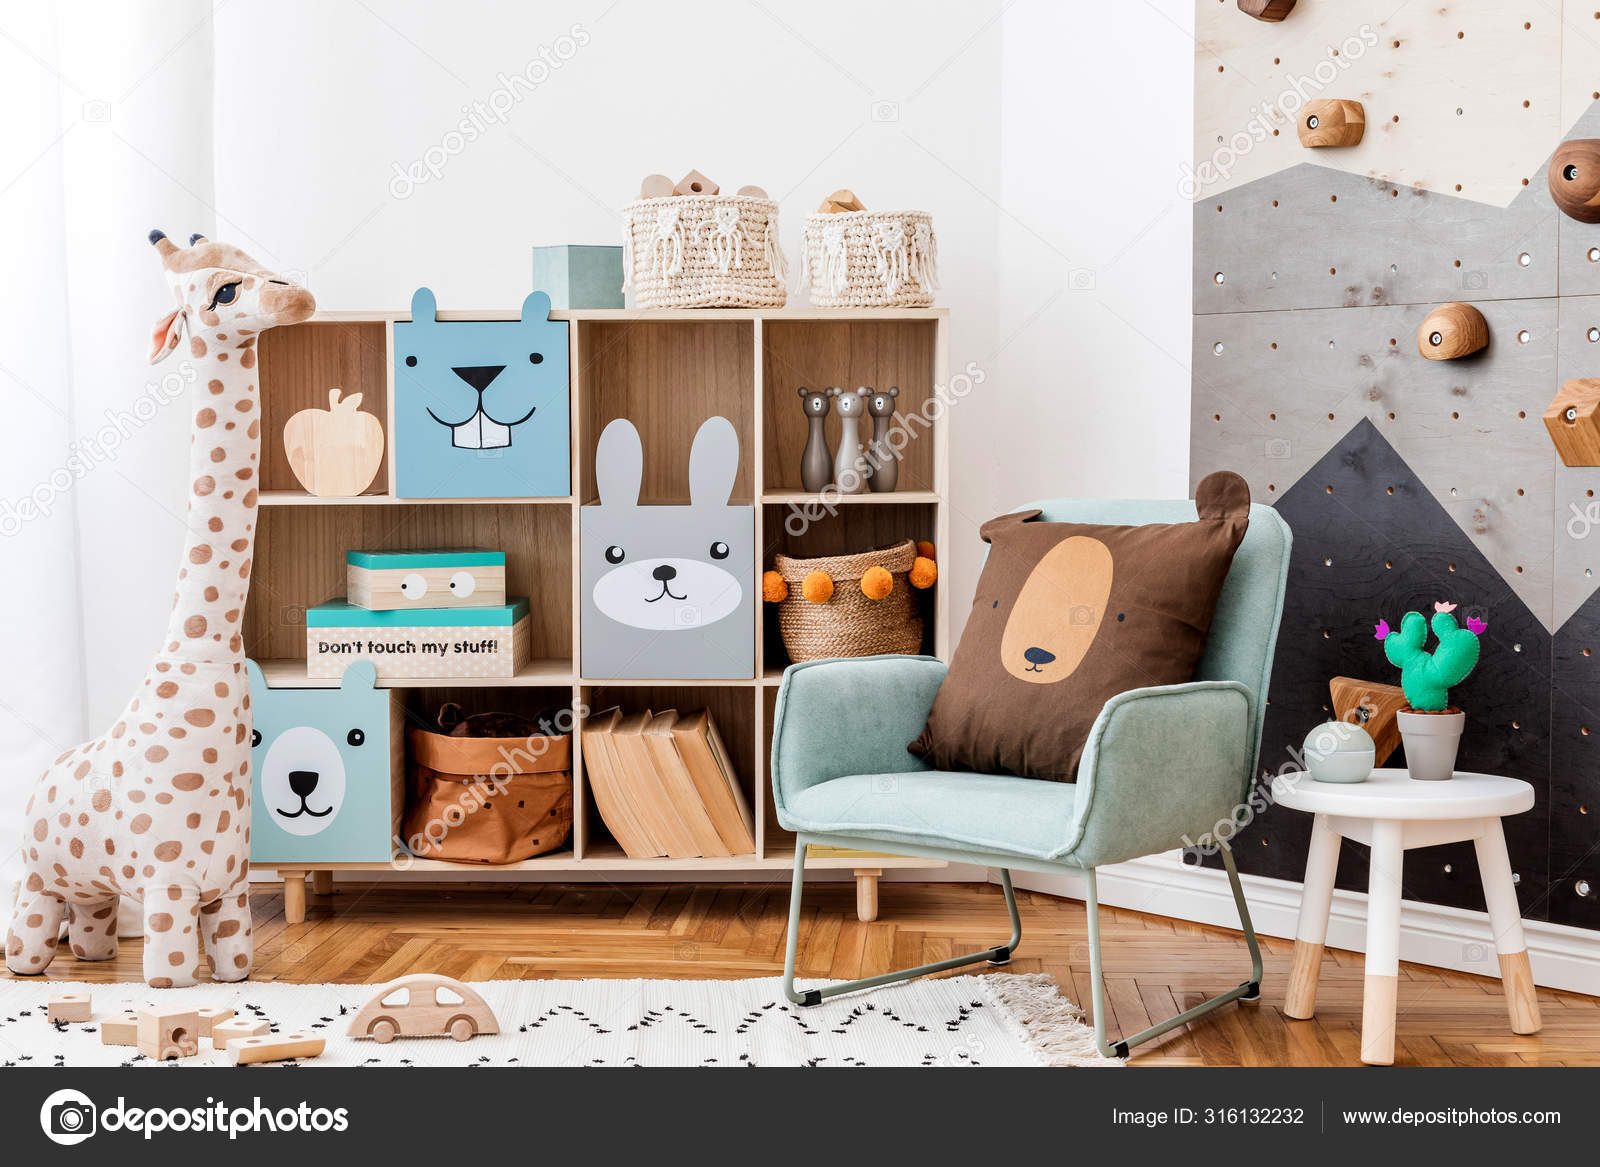 Scandinavian Interior Design Playroom Modern Climbing Wall Kids Design Furnitures Stock Photo Image By Followtheflow 316132232